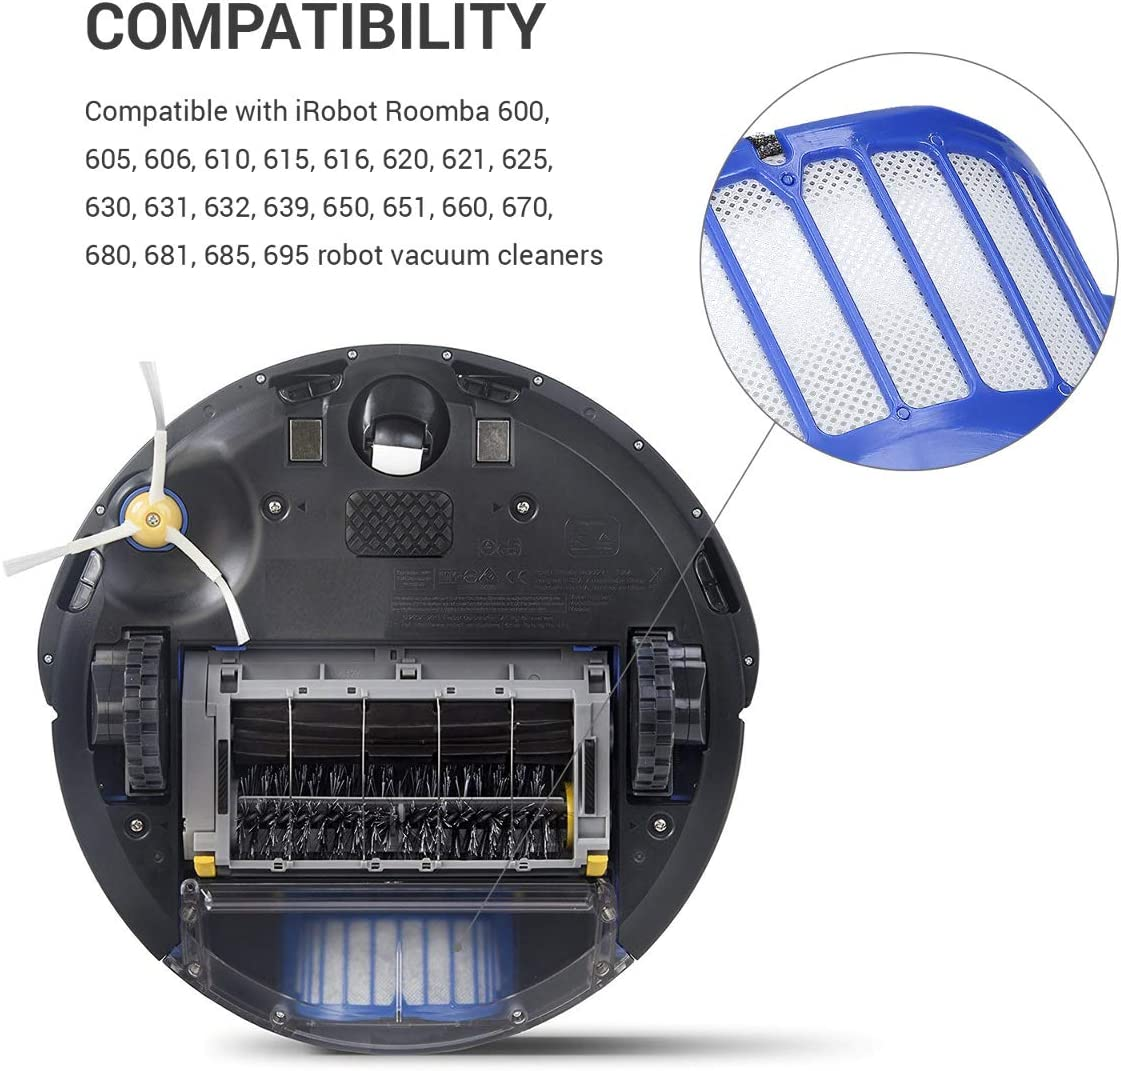 kwmobile Set de 3 filtros de Repuesto compatibles con Roomba ...